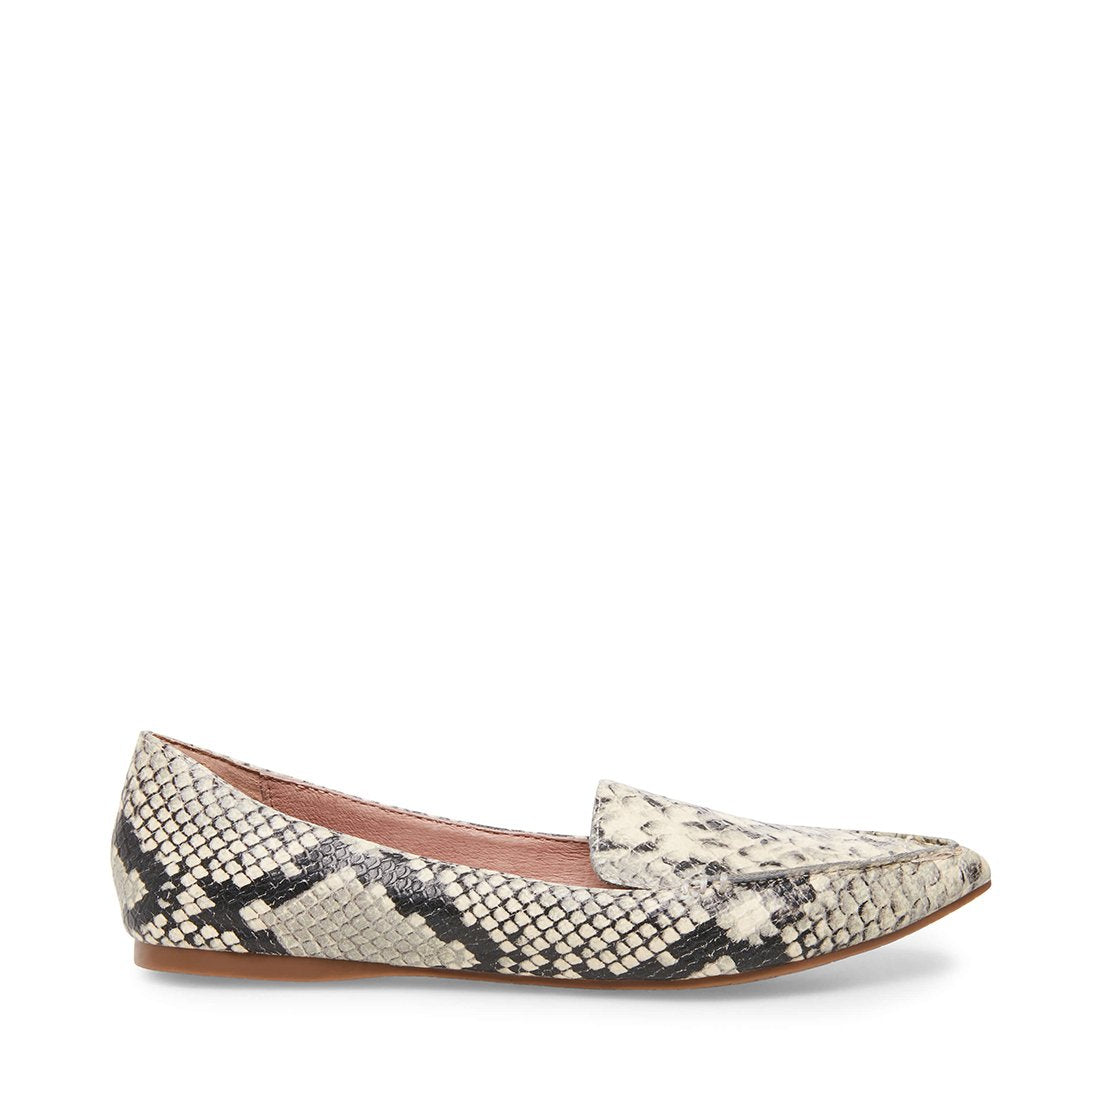 55fdfbe7ae6 FEATHER SNAKE – Steve Madden